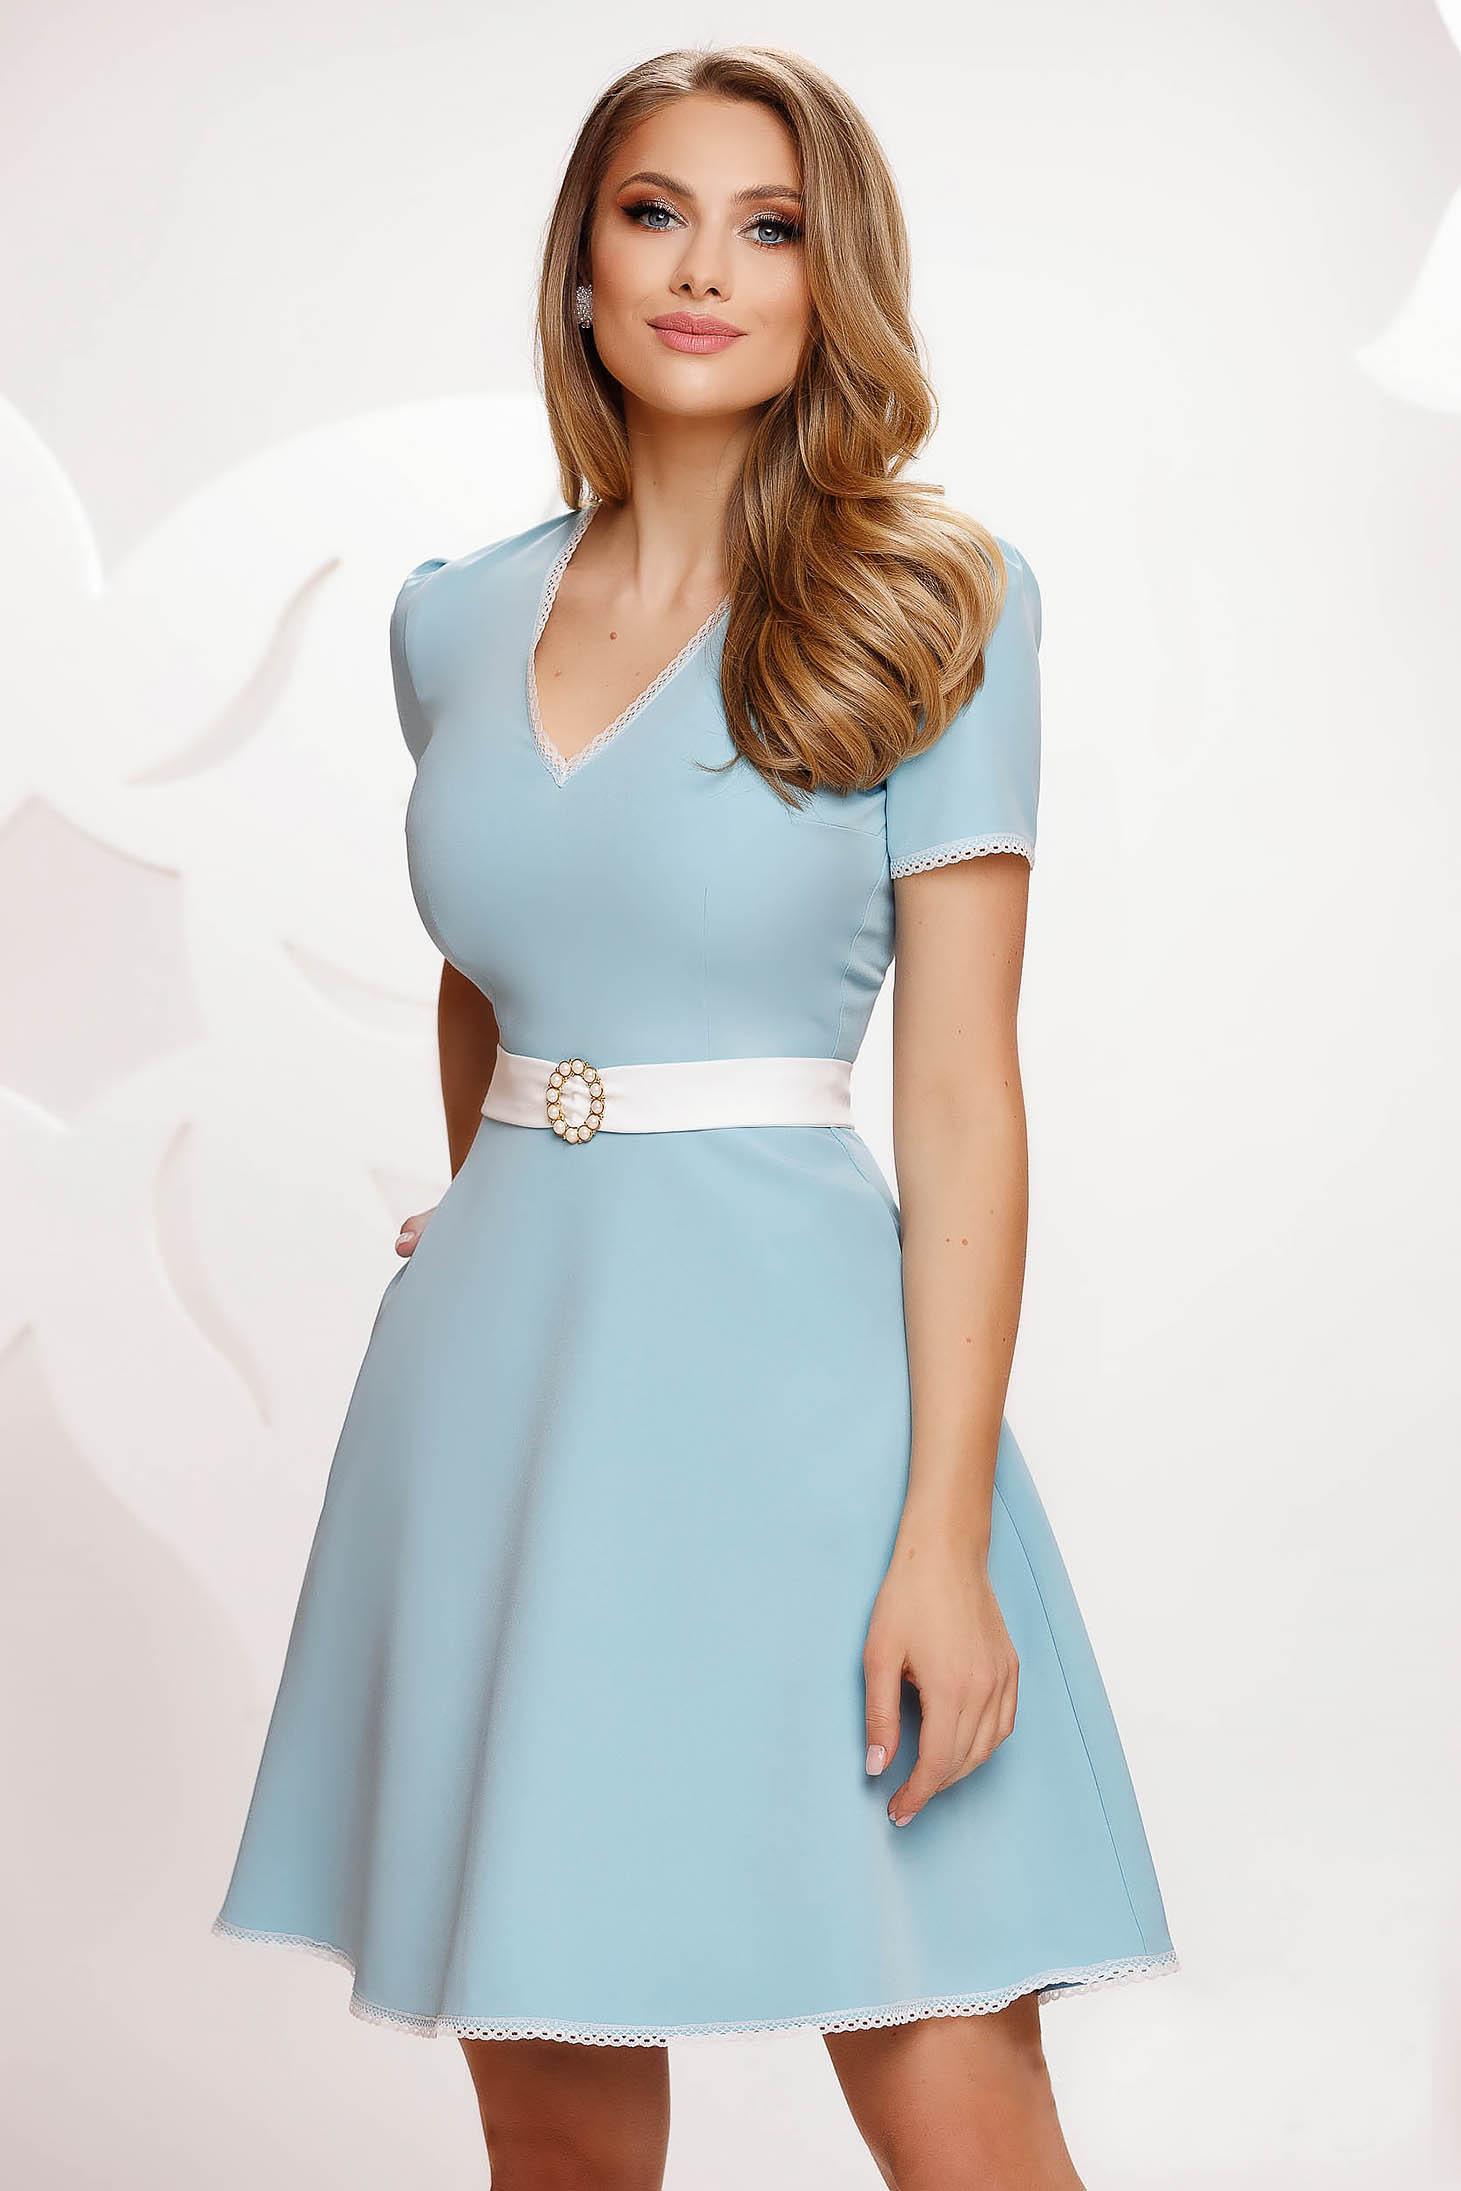 Lightblue dress short cut cloche slightly elastic fabric with lace details with pockets